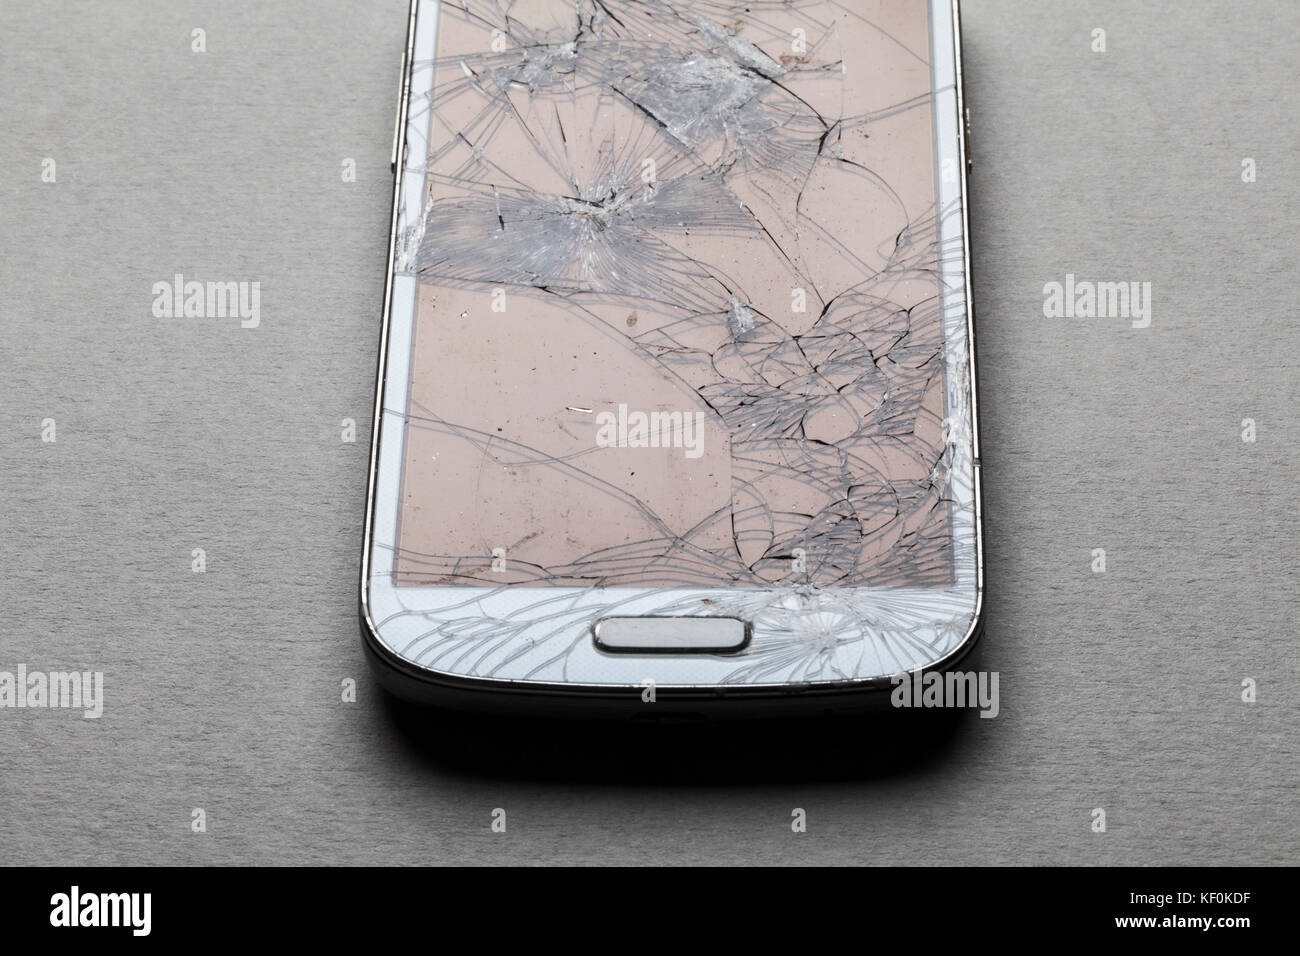 how to fix a shattered smartphone screen